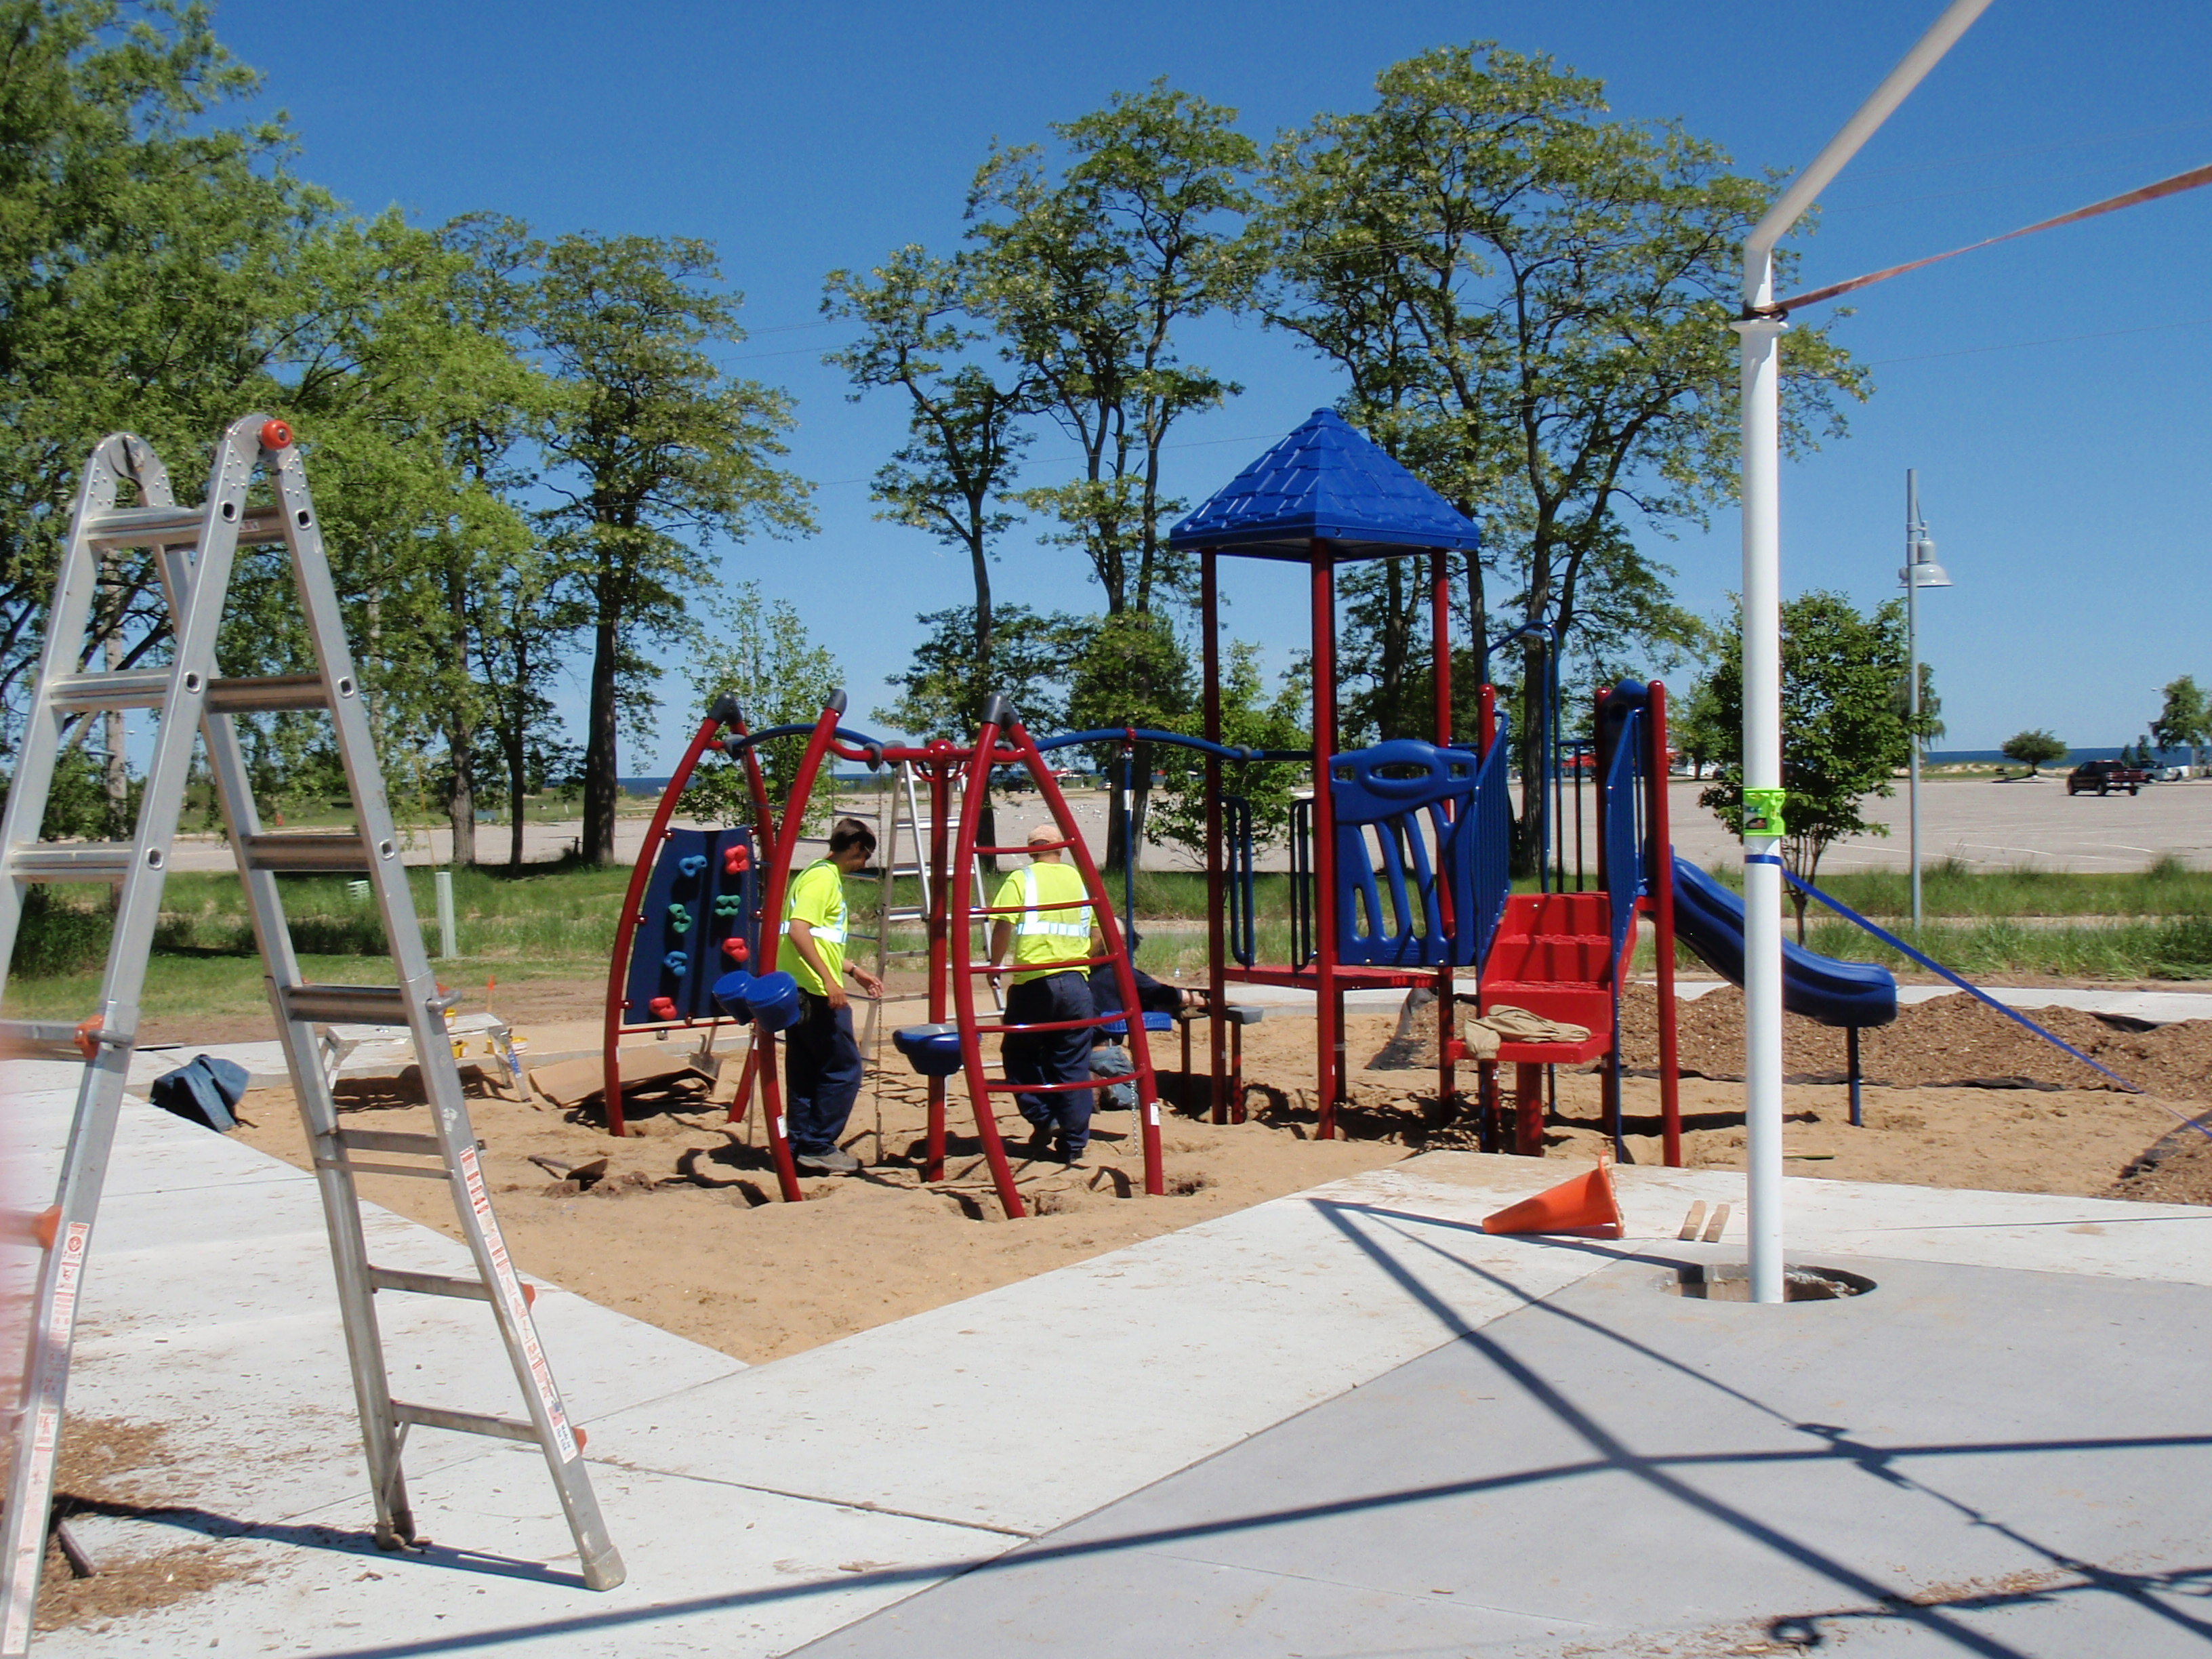 Volunteers are installing components of the small slide and climber during the community build of Rocket Park